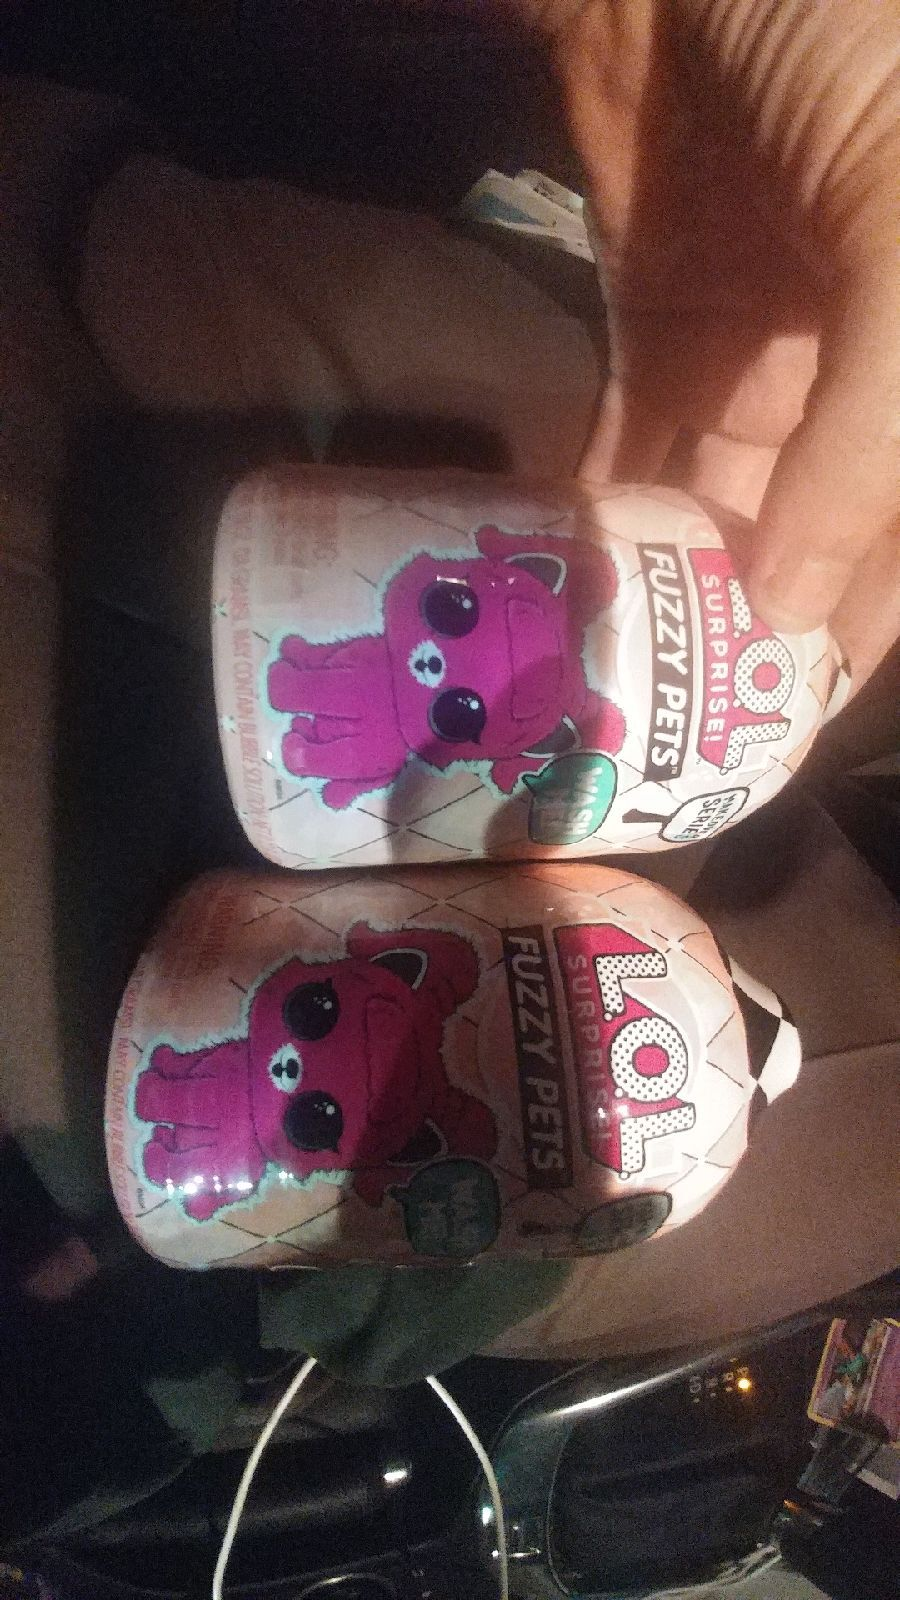 Two Brand New Sealed Packs Of Lol Surprise Fuzzy Pets Dolls Makeover Series Great For Little Kids And Unboxing Videos On Youtube With Images Unboxing Videos Playset Dolls